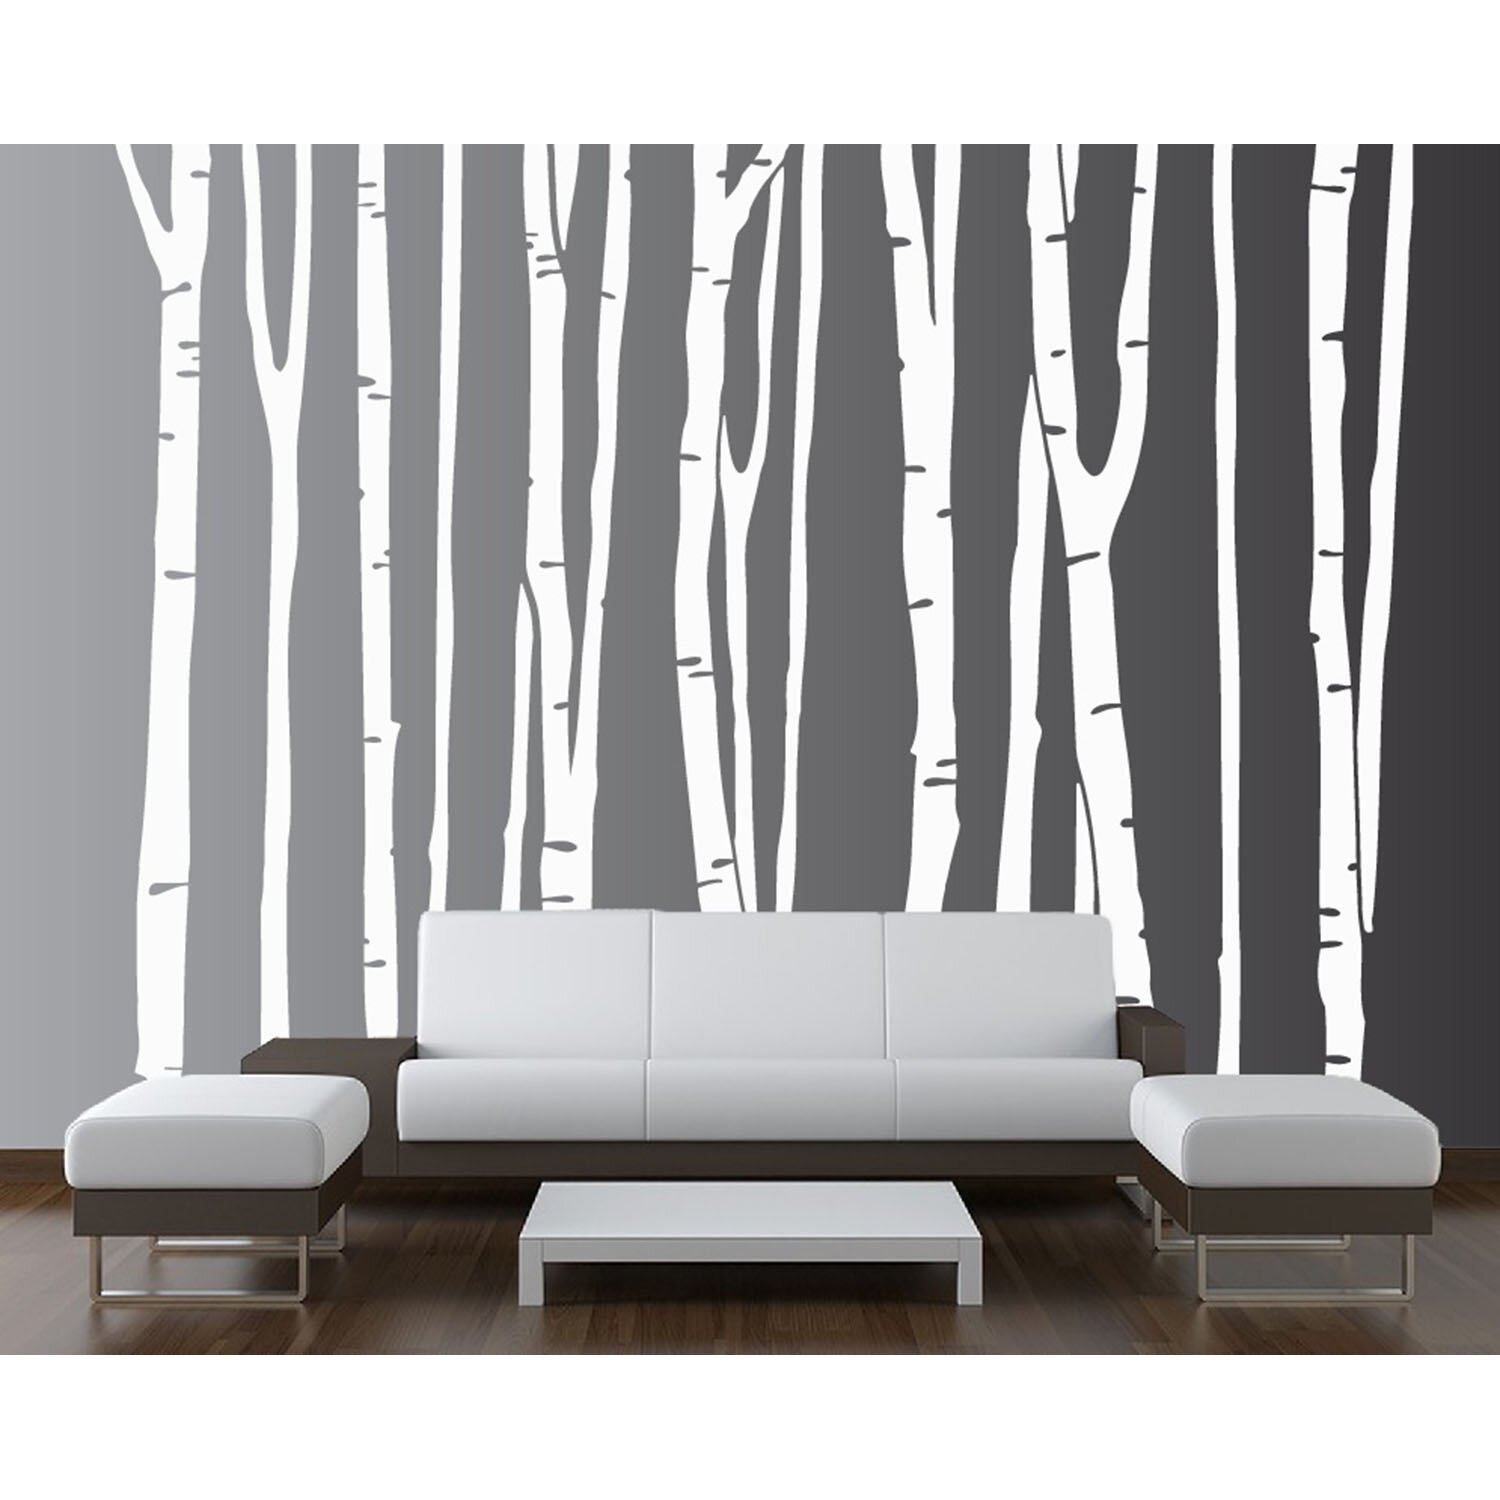 innovative stencils birch tree forest sticker wall decal reviews wayfair. Black Bedroom Furniture Sets. Home Design Ideas